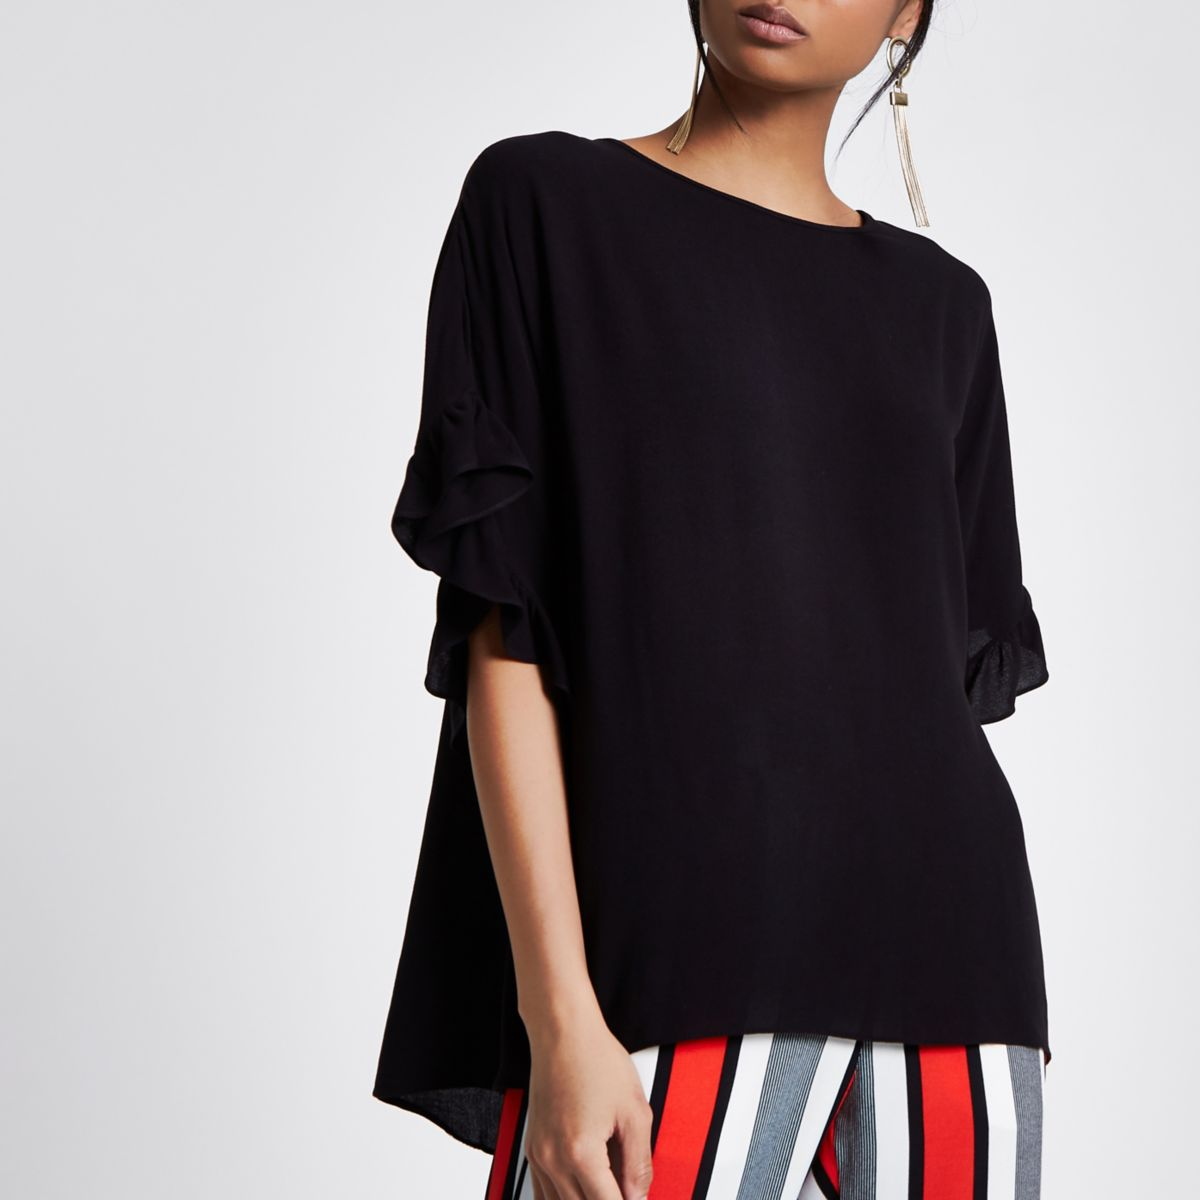 Black Loose Frill Sleeve Top by River Island